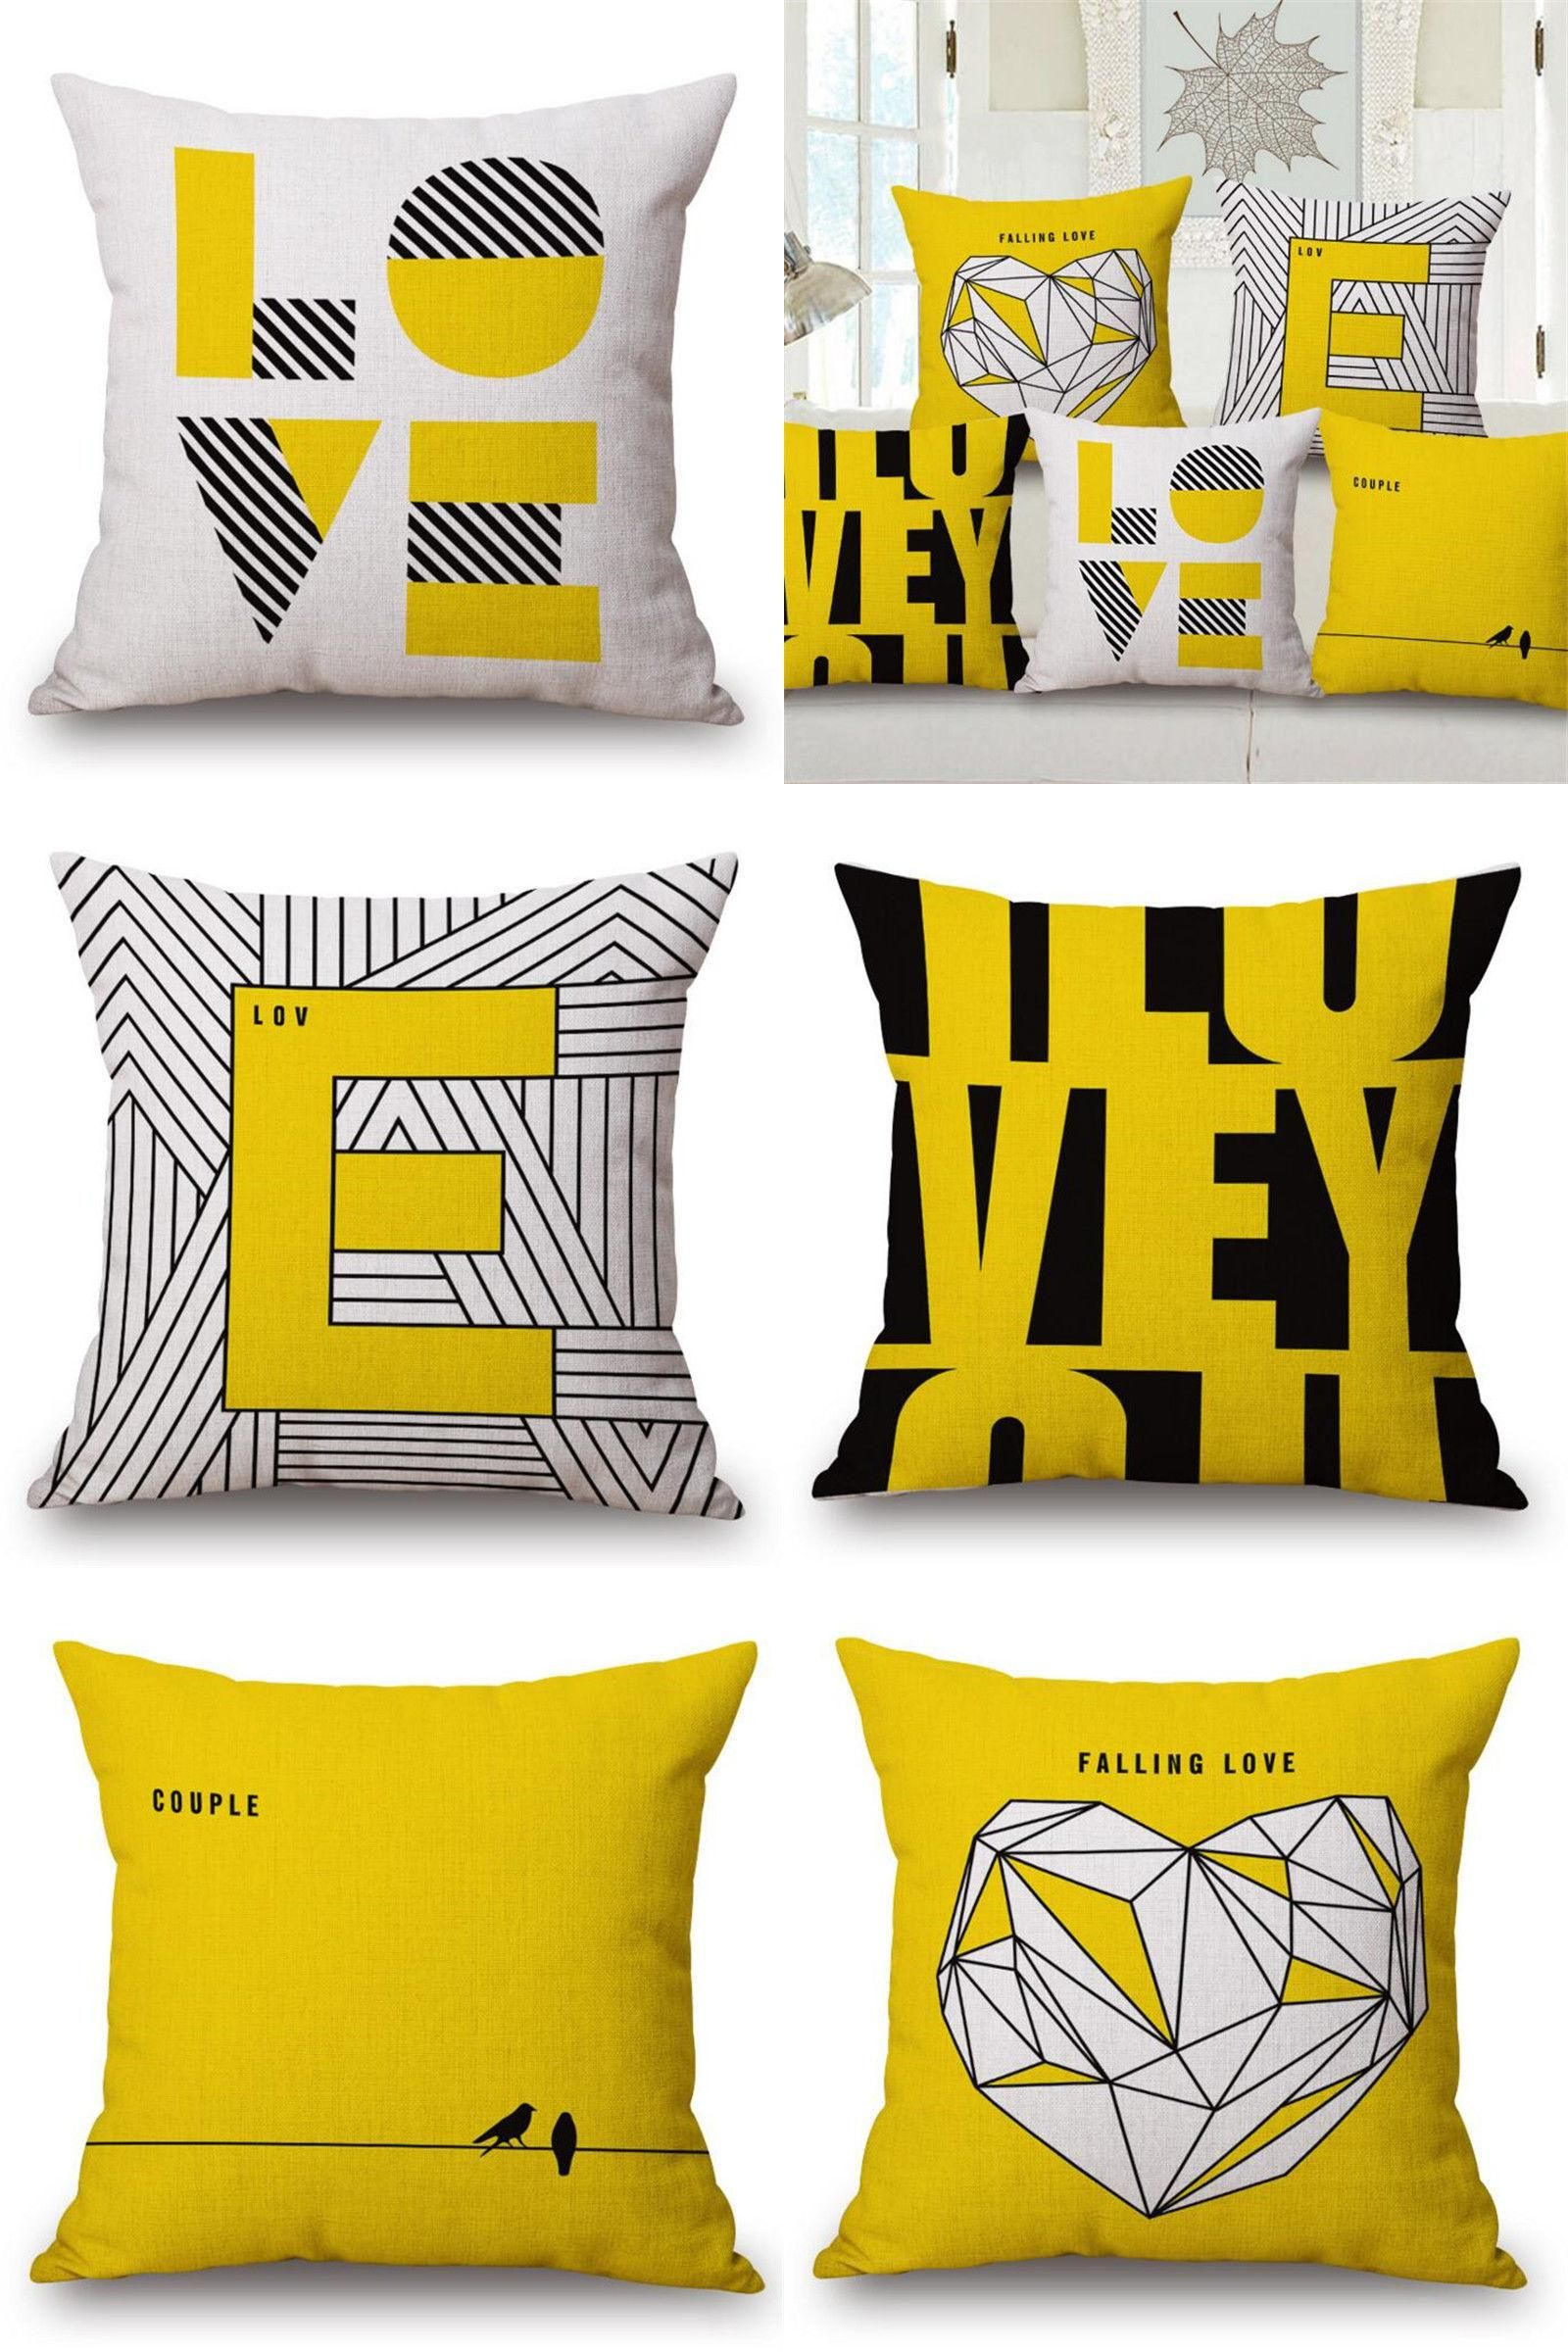 Visit to Buy] Hot Sale Yellow Love Cushion Cover Linen Throw